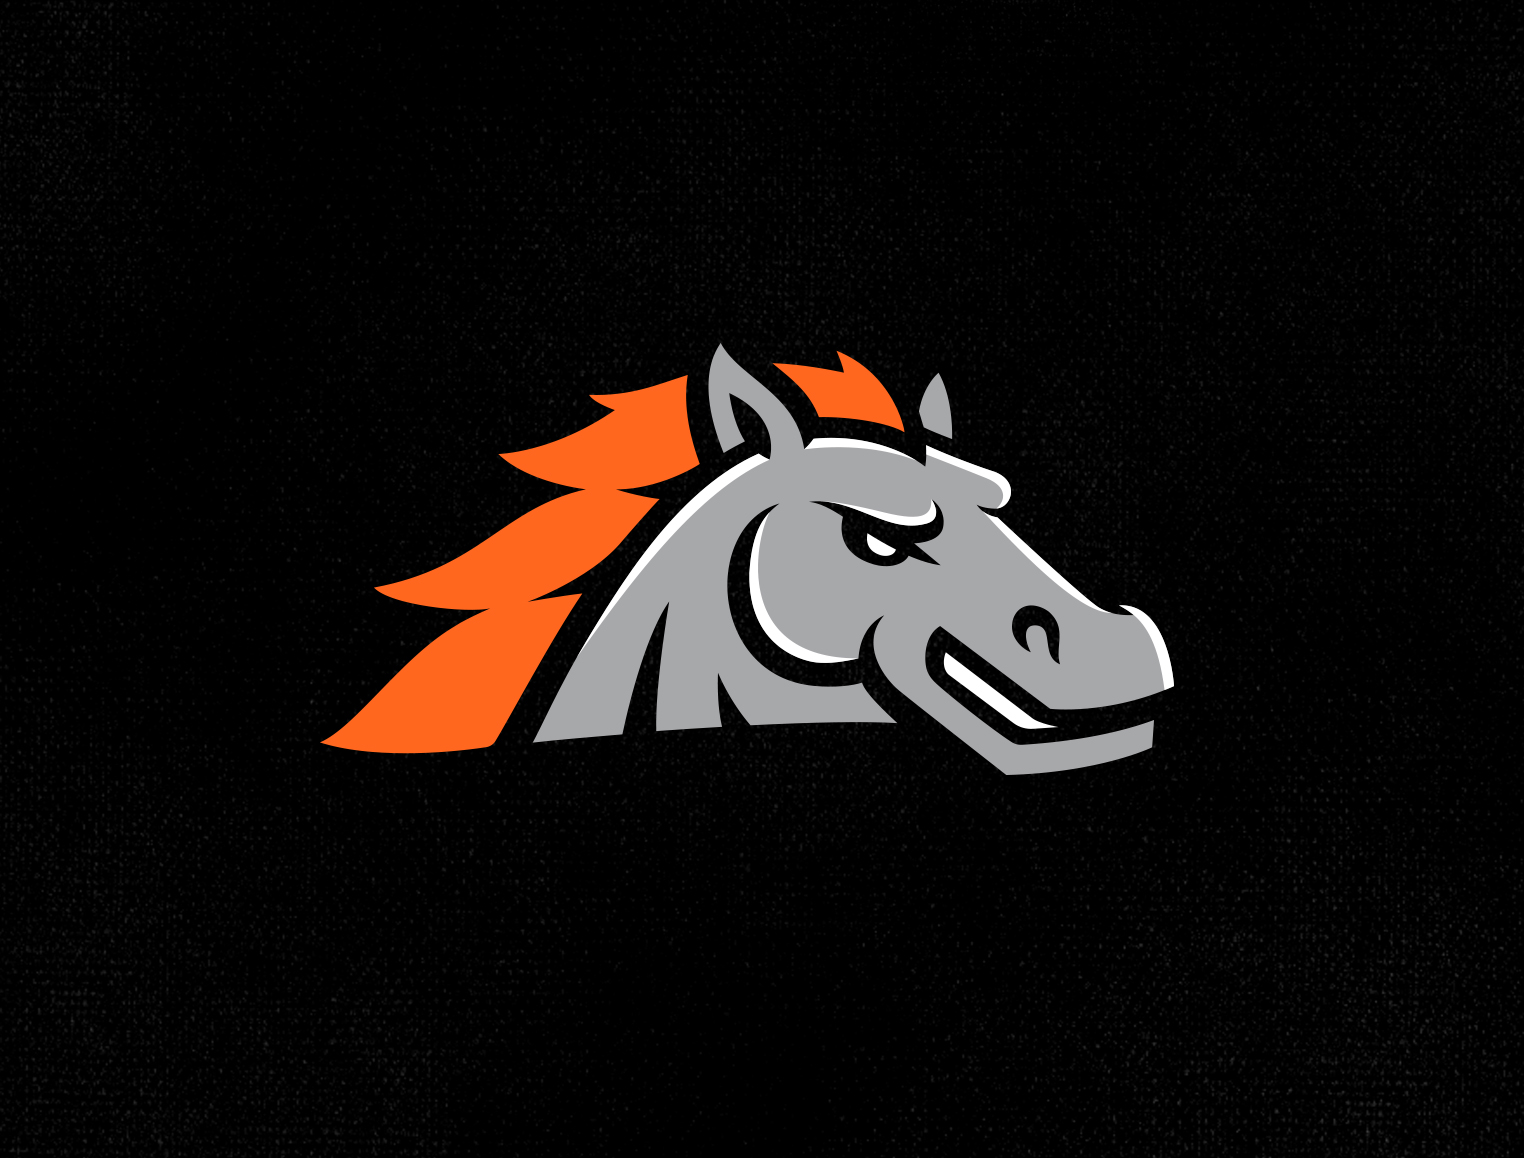 Canberra Cavalry tile image